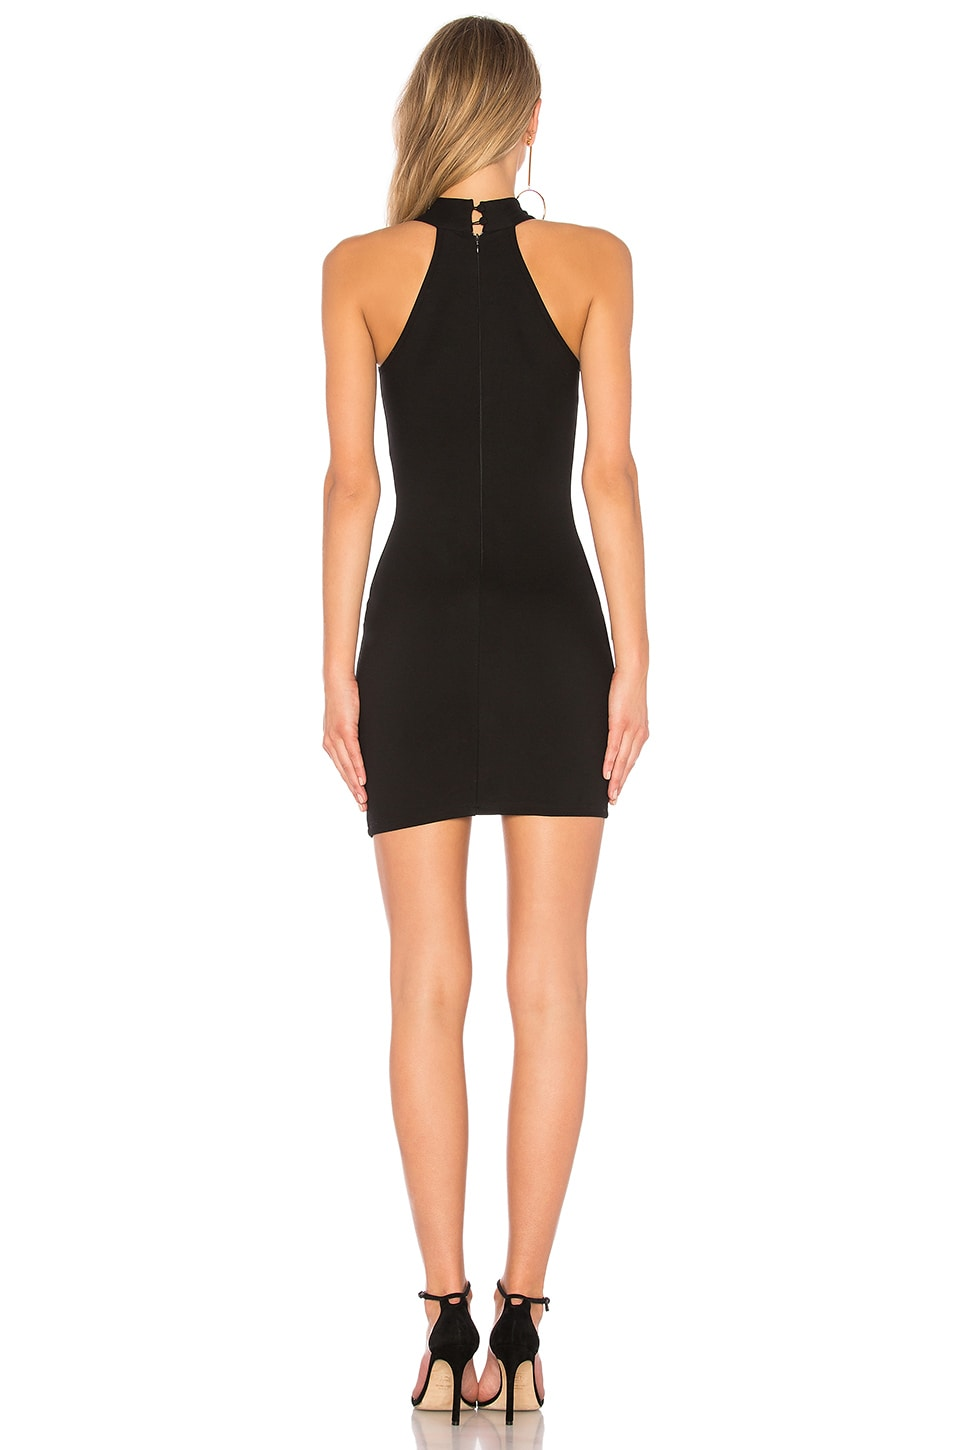 Tegan Wrap Mini Dress, view 3, click to view large image.